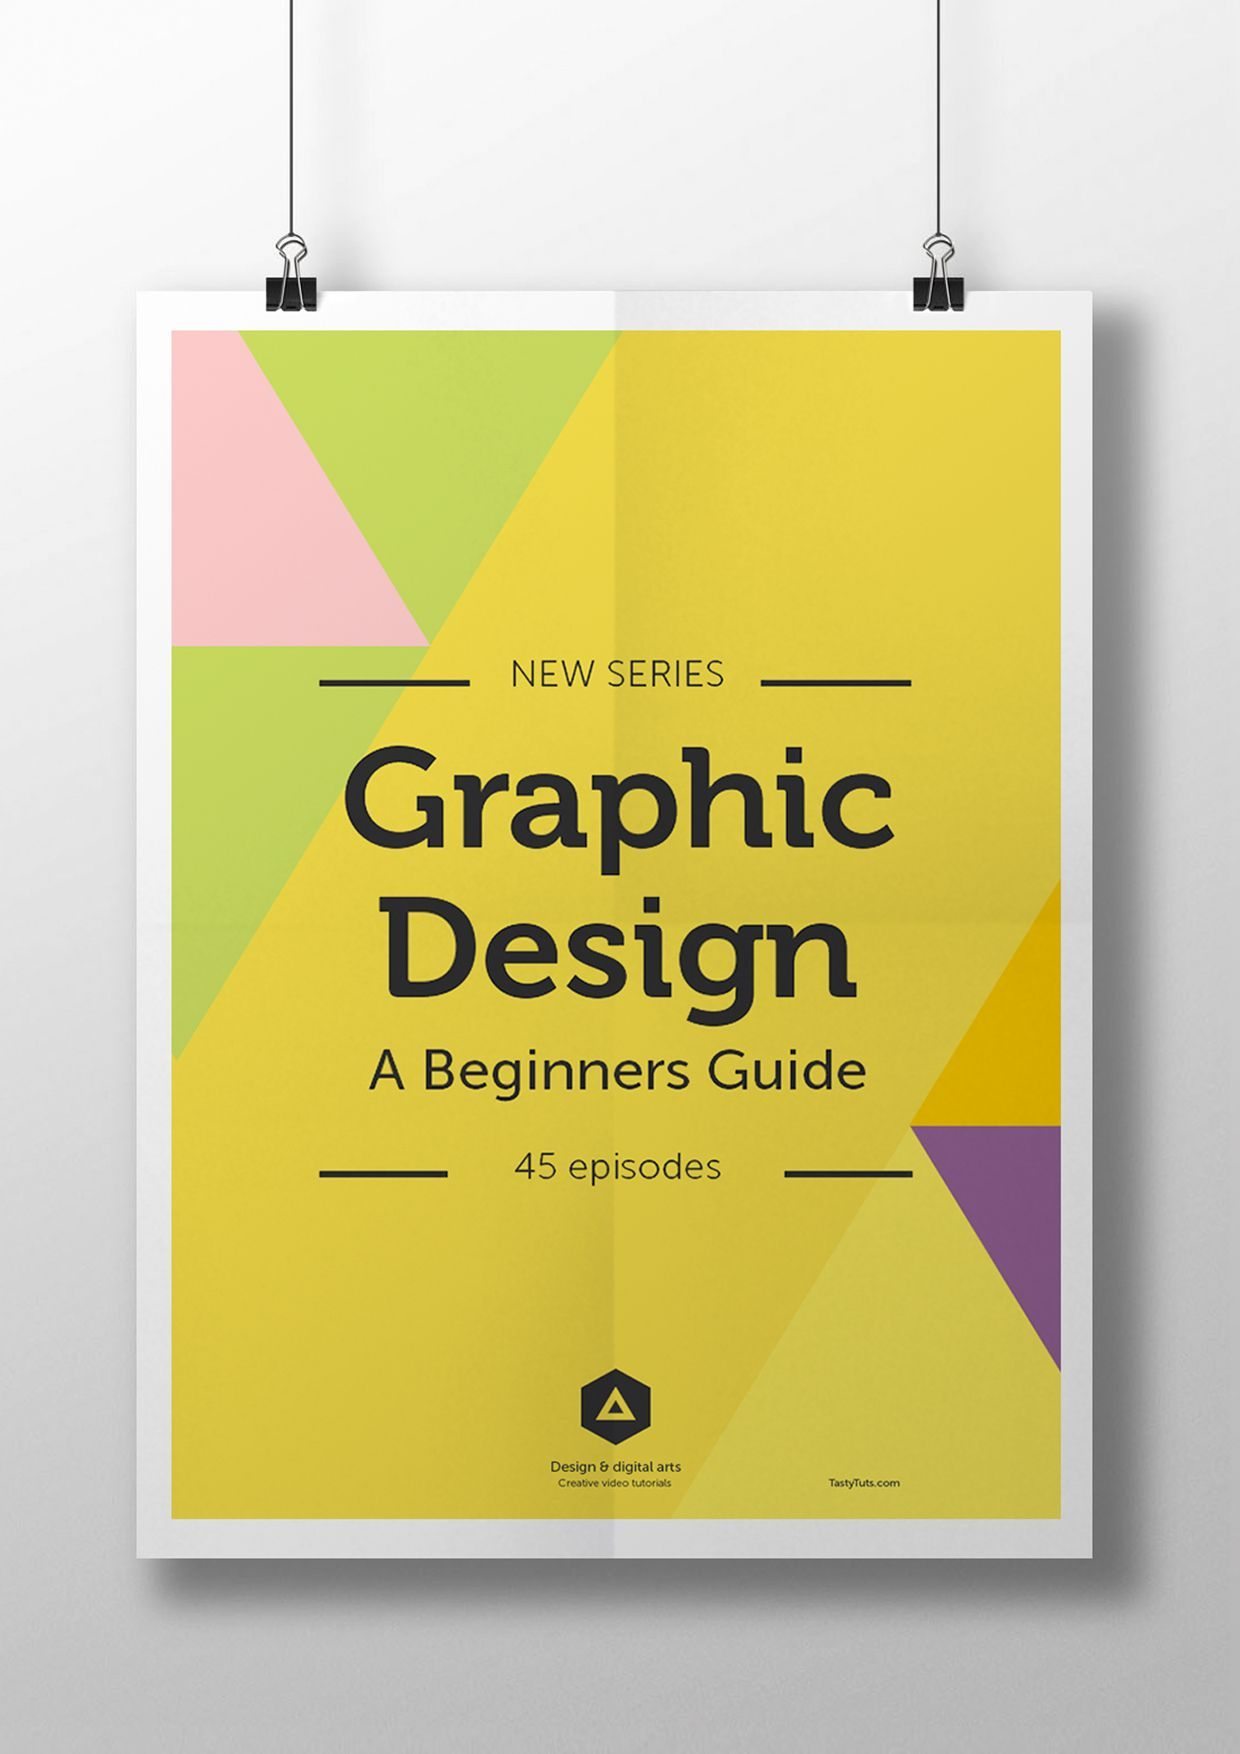 Pin on graphic design tips